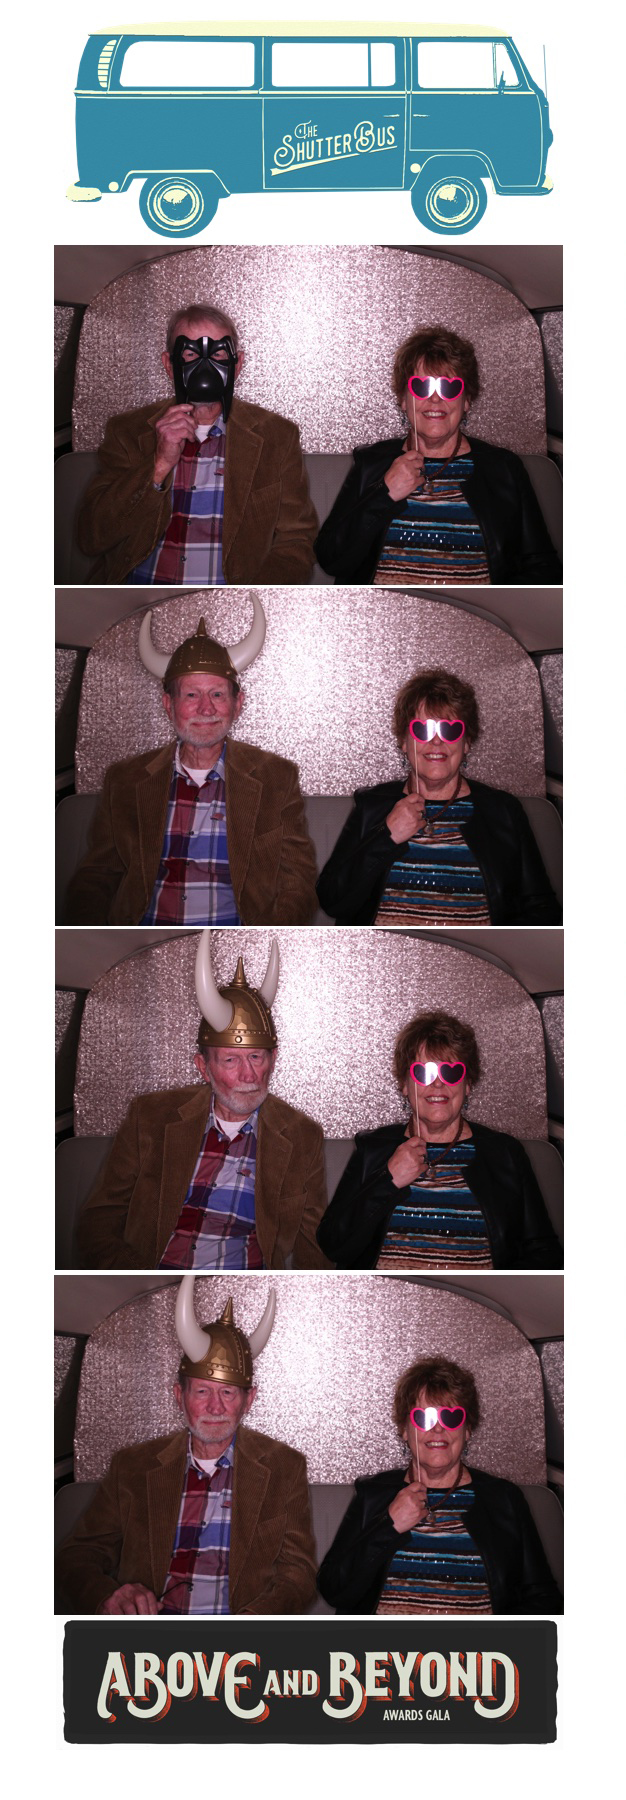 photo booth joplin missouri